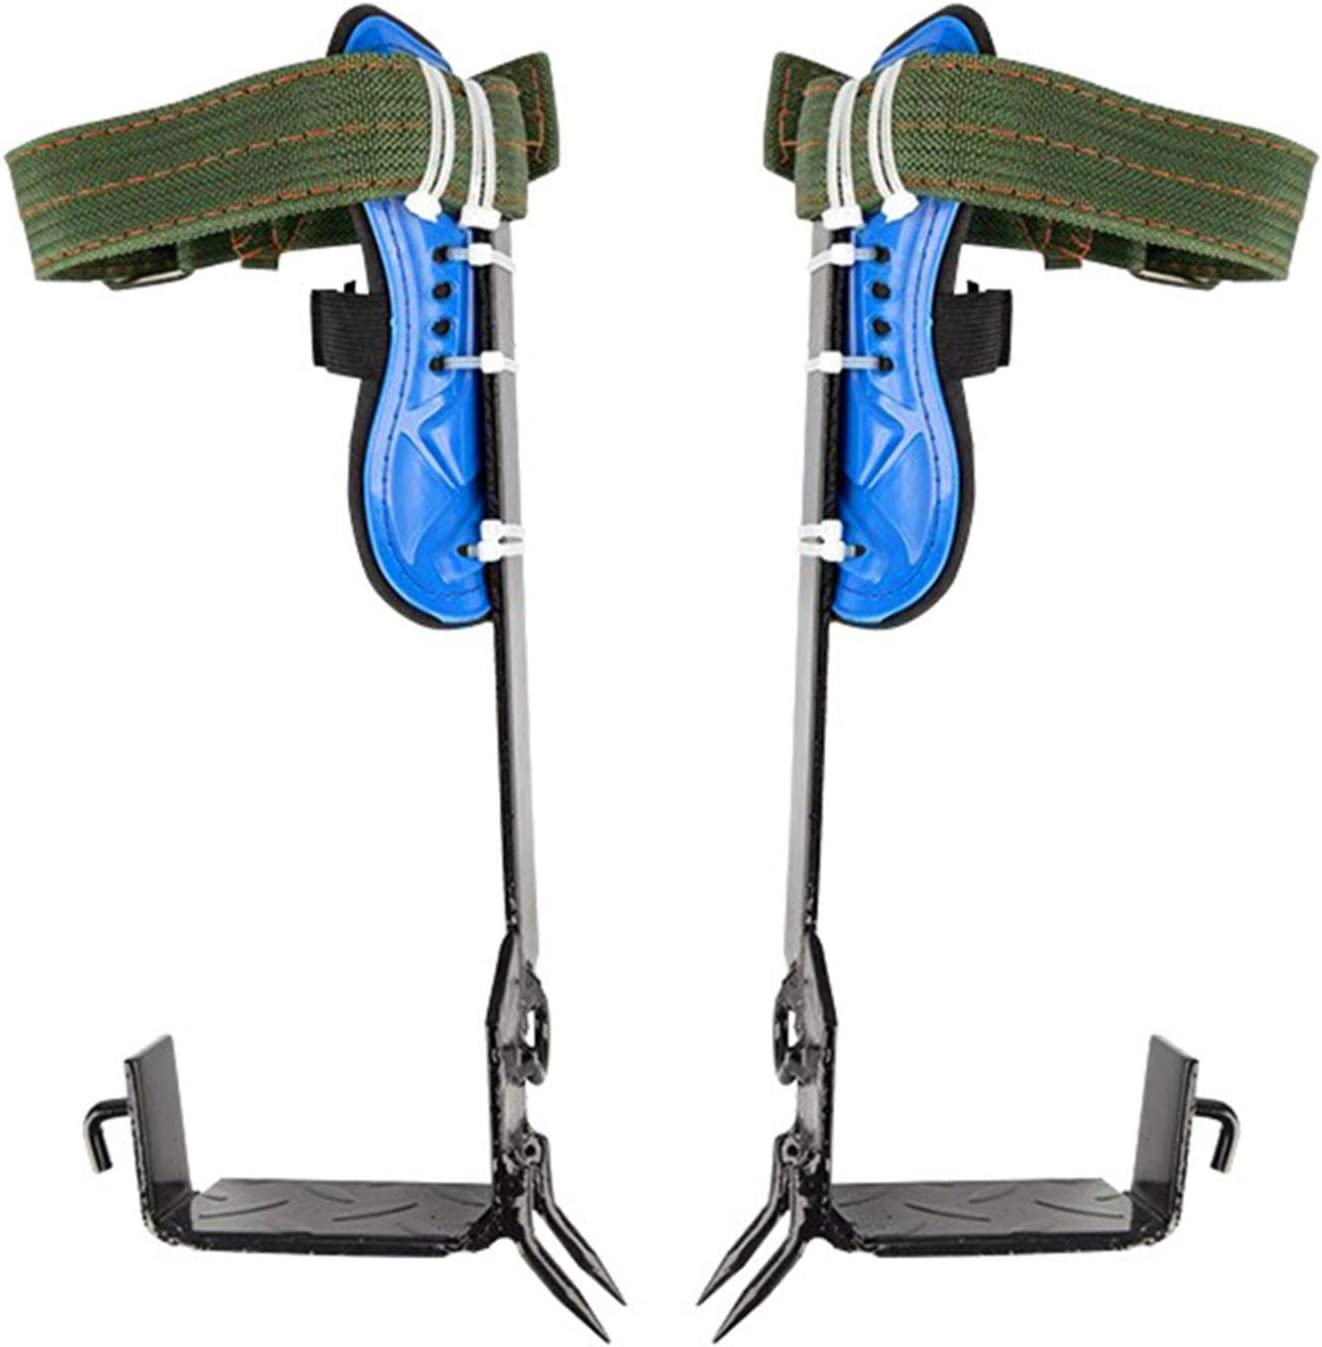 Tree Pole Climbing Spike Set Steel Claw Max 51% OFF Stainless 304 Nashville-Davidson Mall